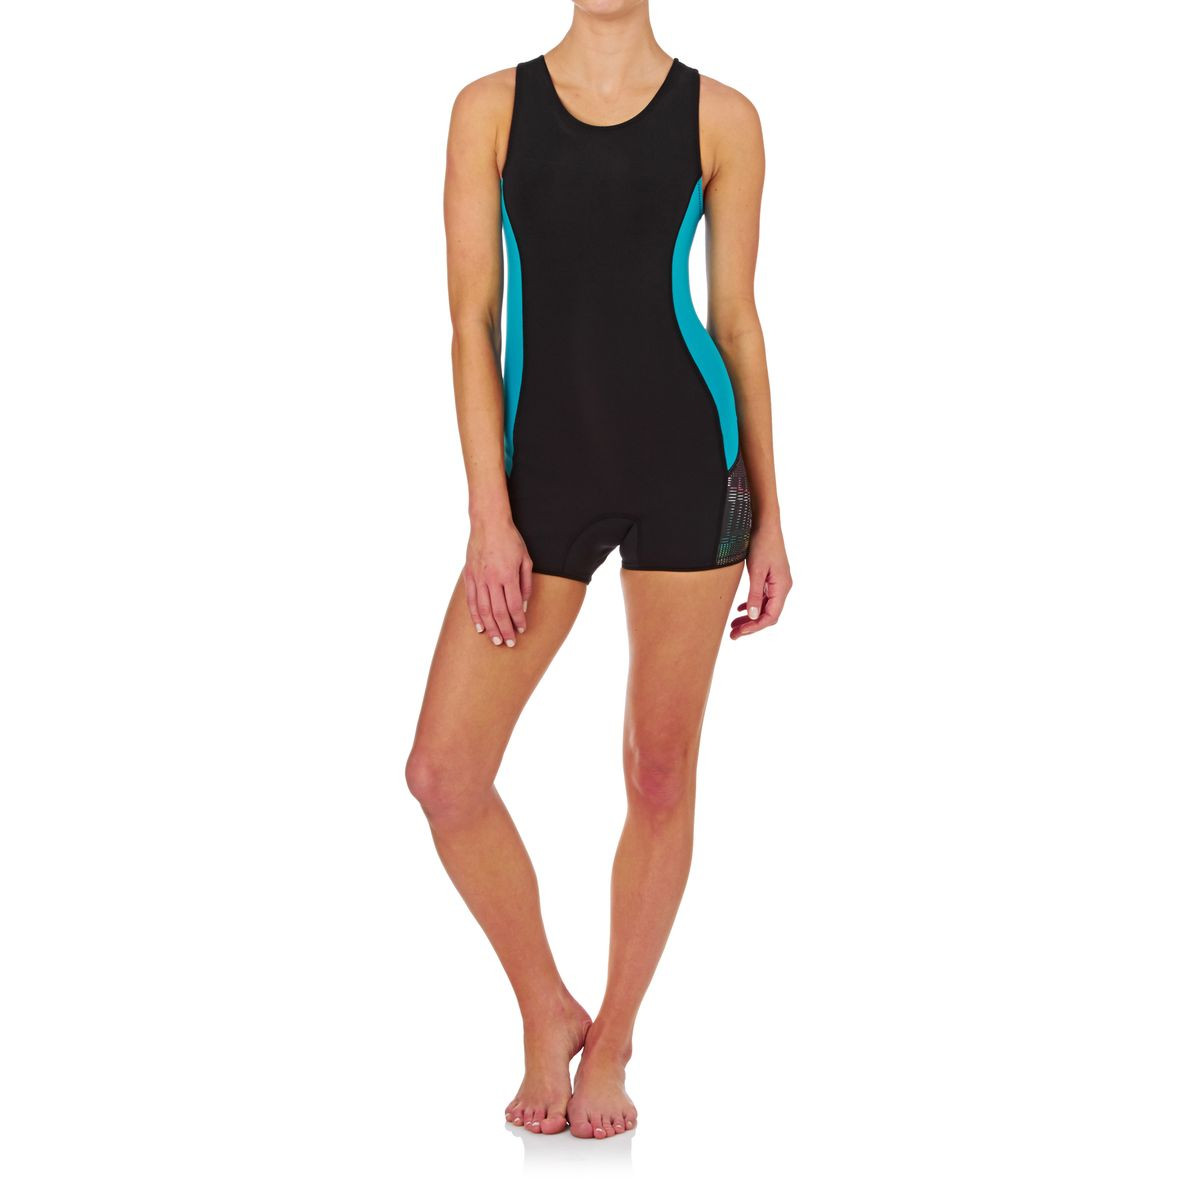 Patagonia Womens R1 1.5mm Zipperless Jane Wetsuit - Howling Turquoise